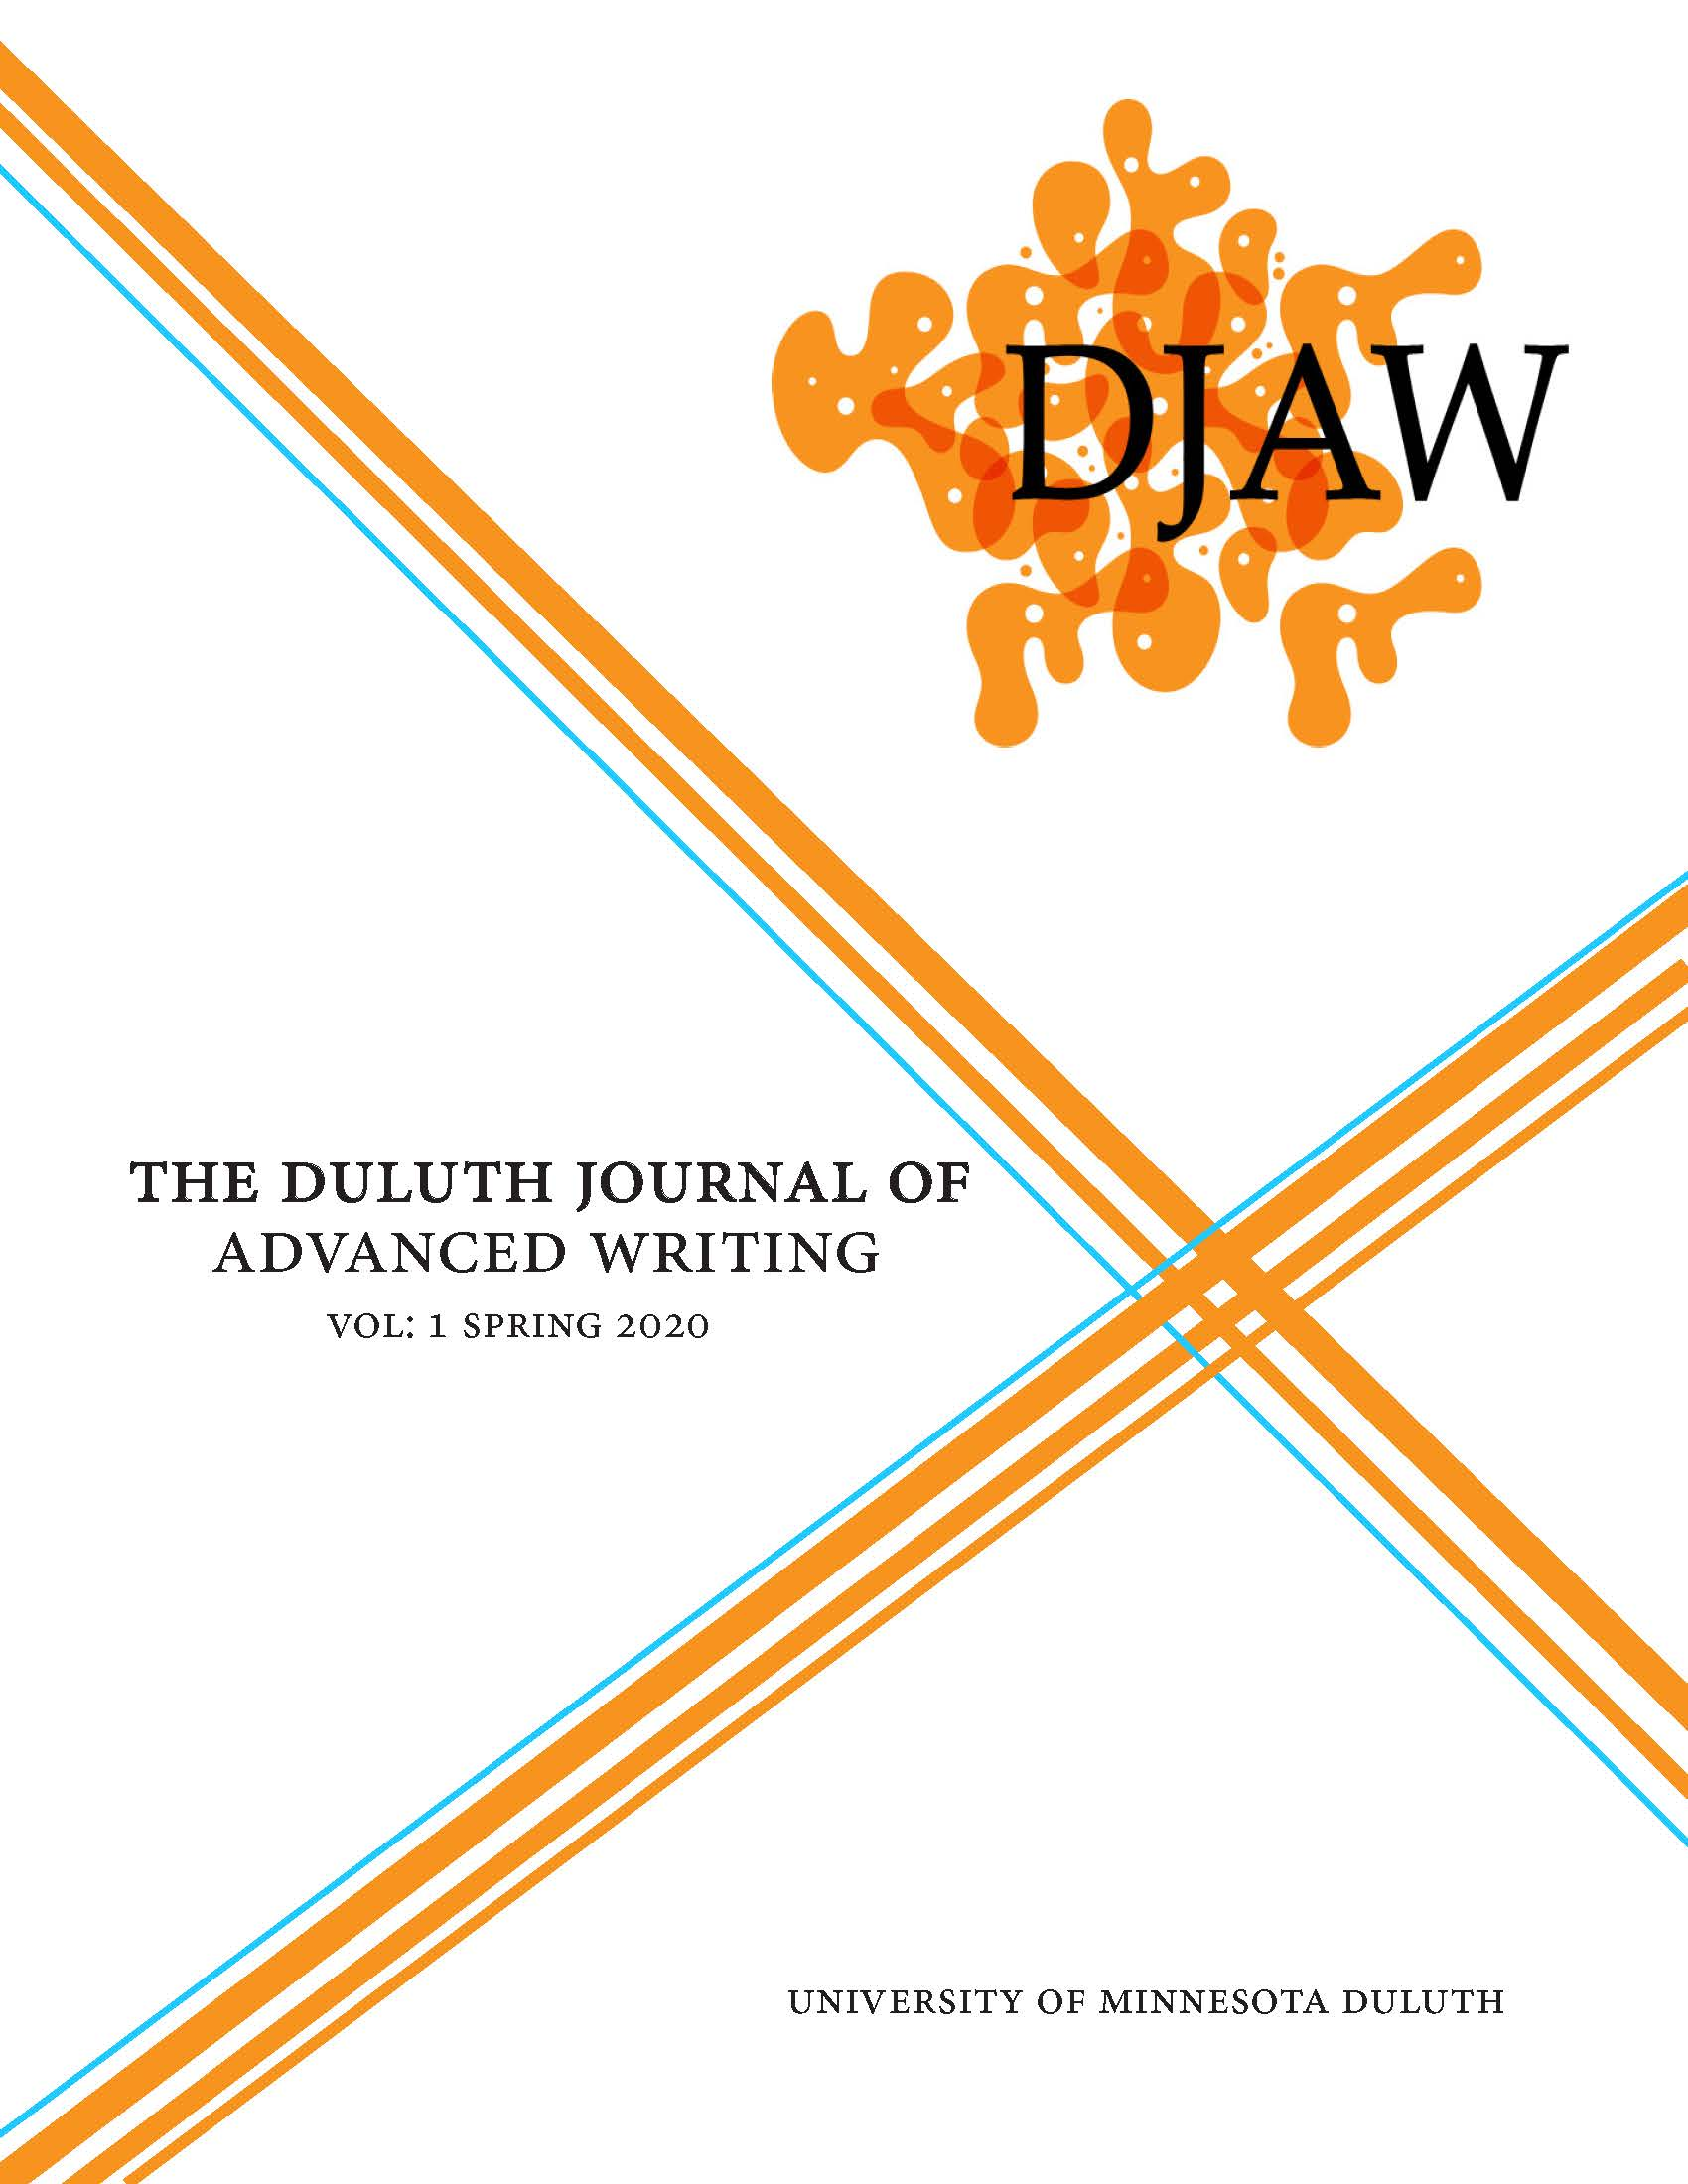 Image of Duluth Journal of Advanced Writing